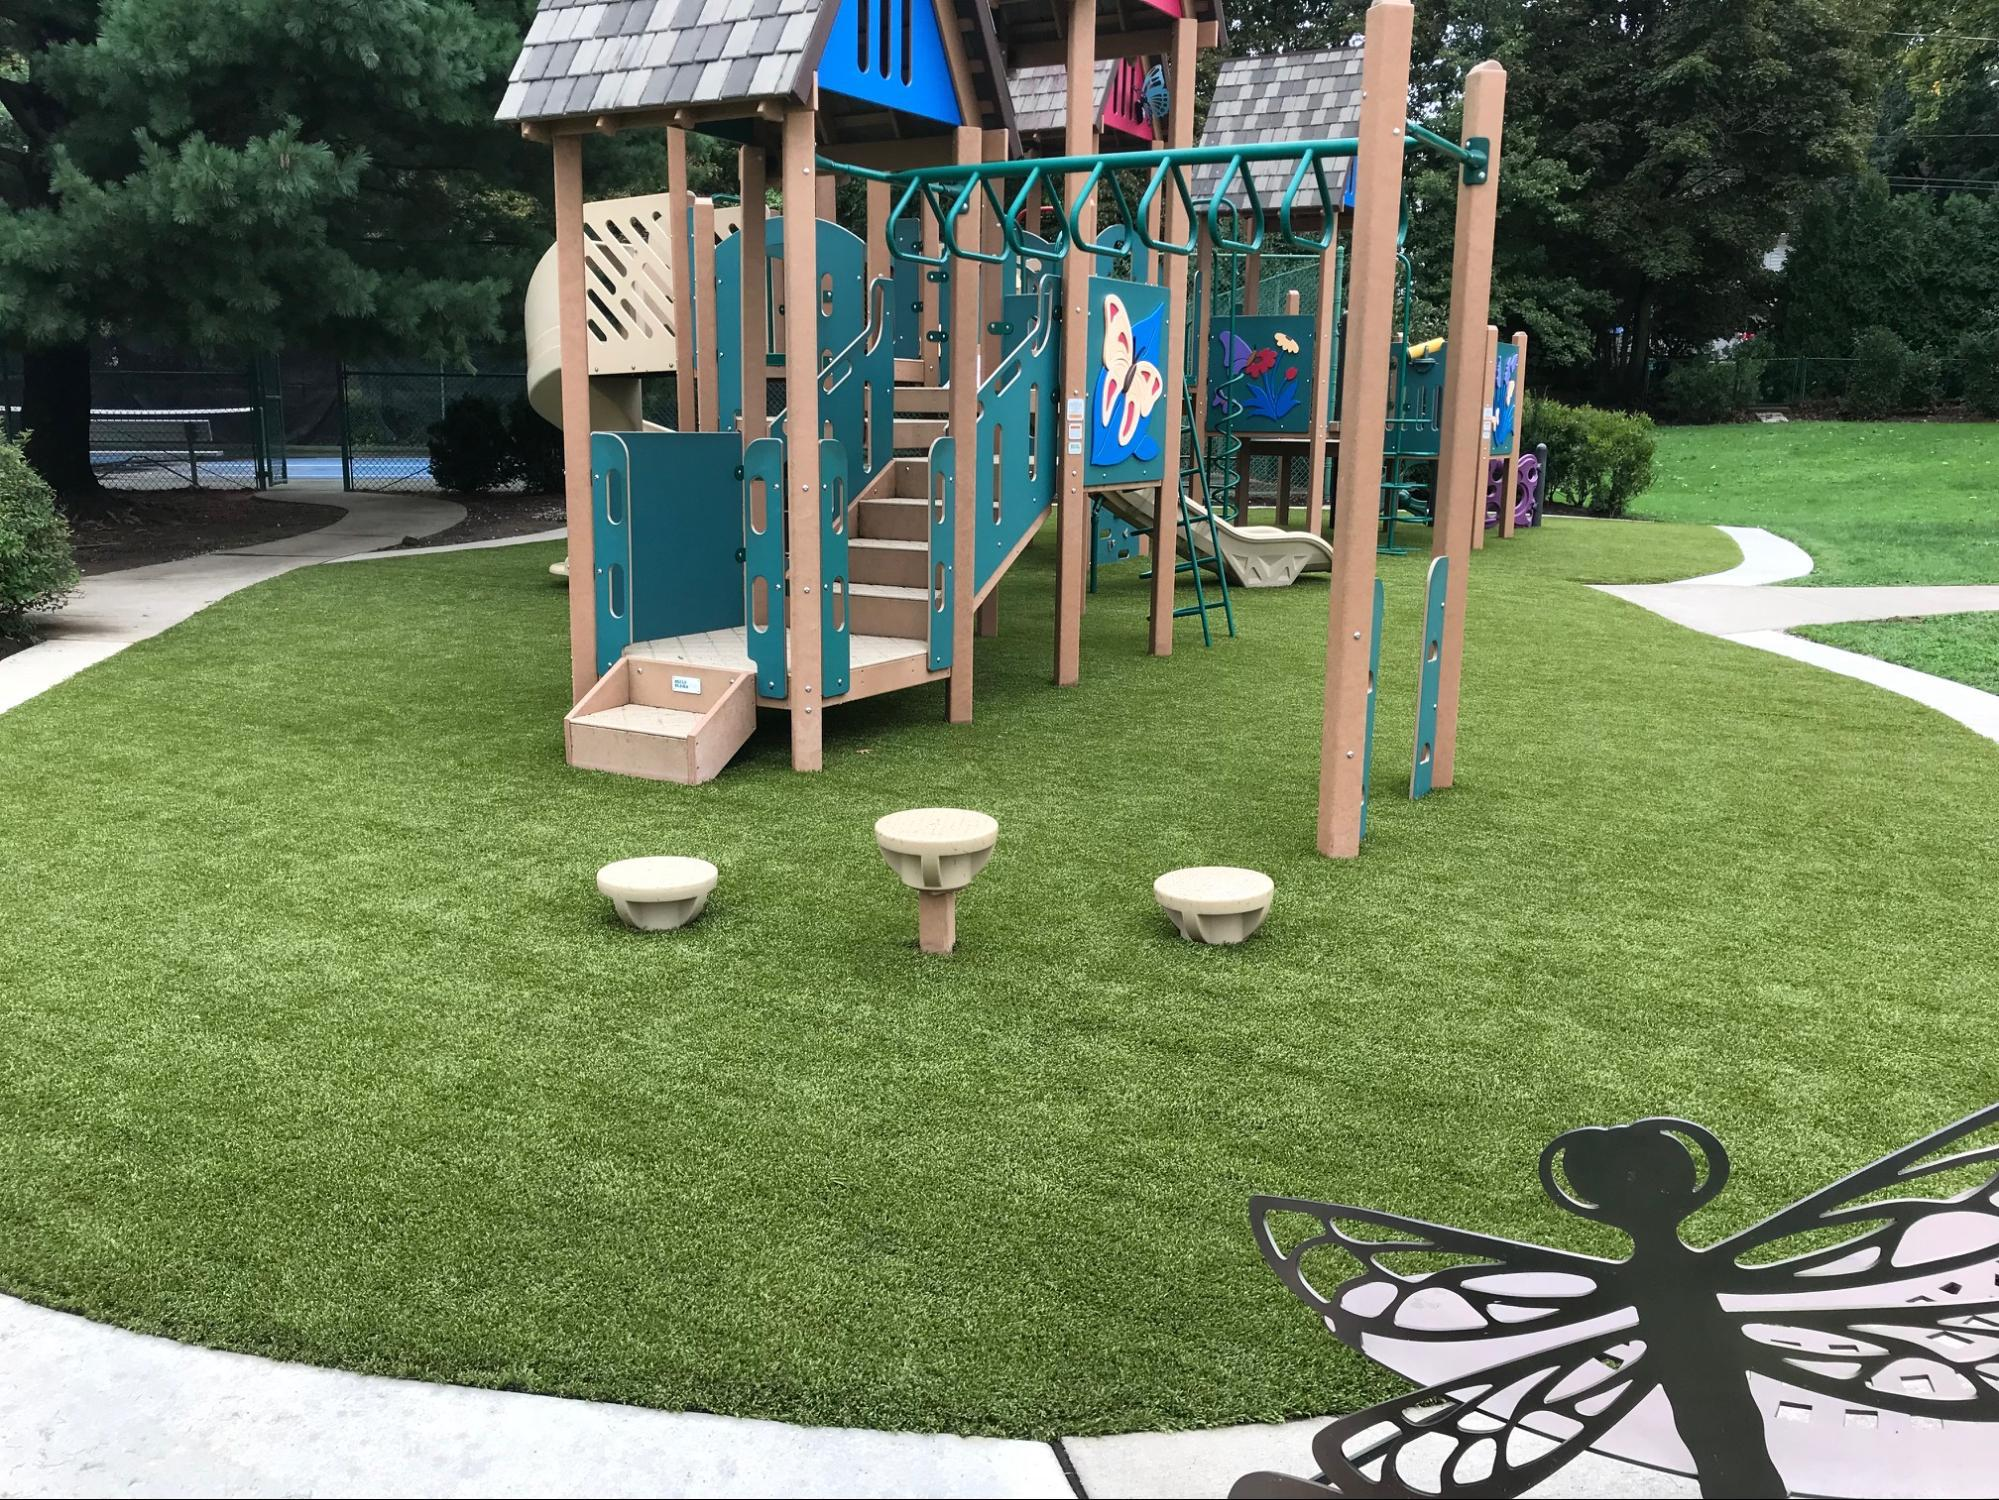 Bug-themed playground at the Laurel School in Shaker Heights, Ohio, featuring Playground Grass Ultra by ForeverLawn